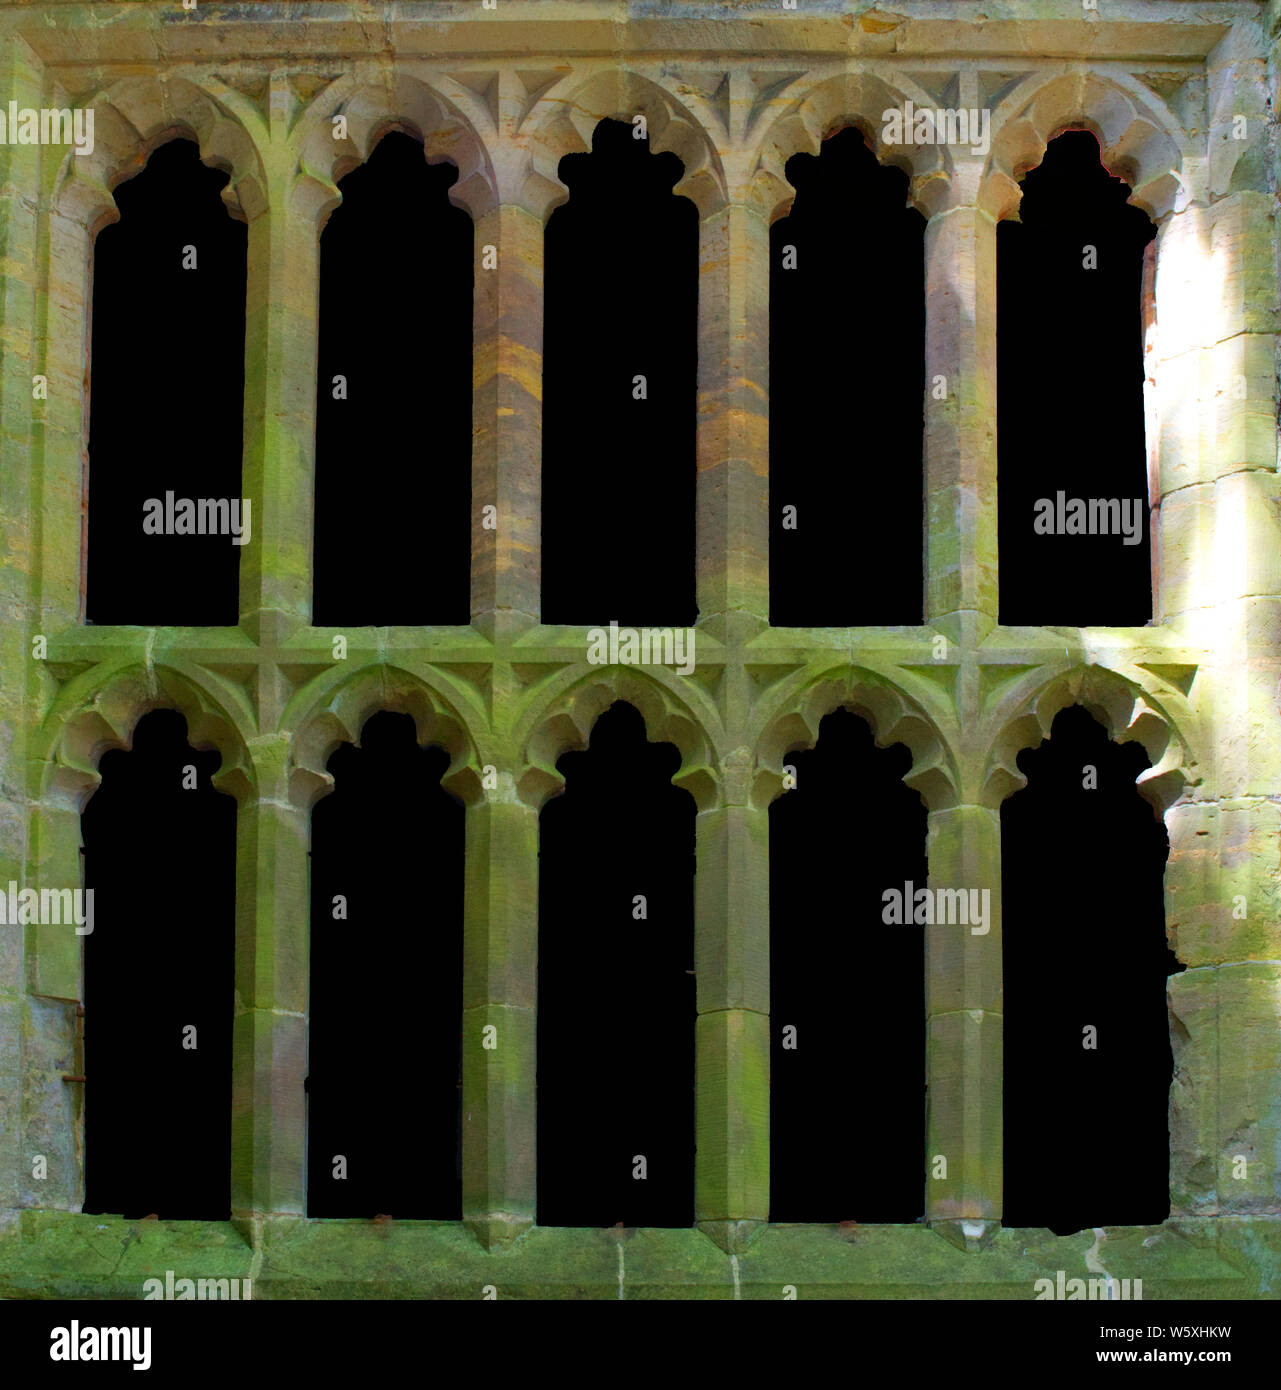 blacked out windows in gothic building Stock Photo